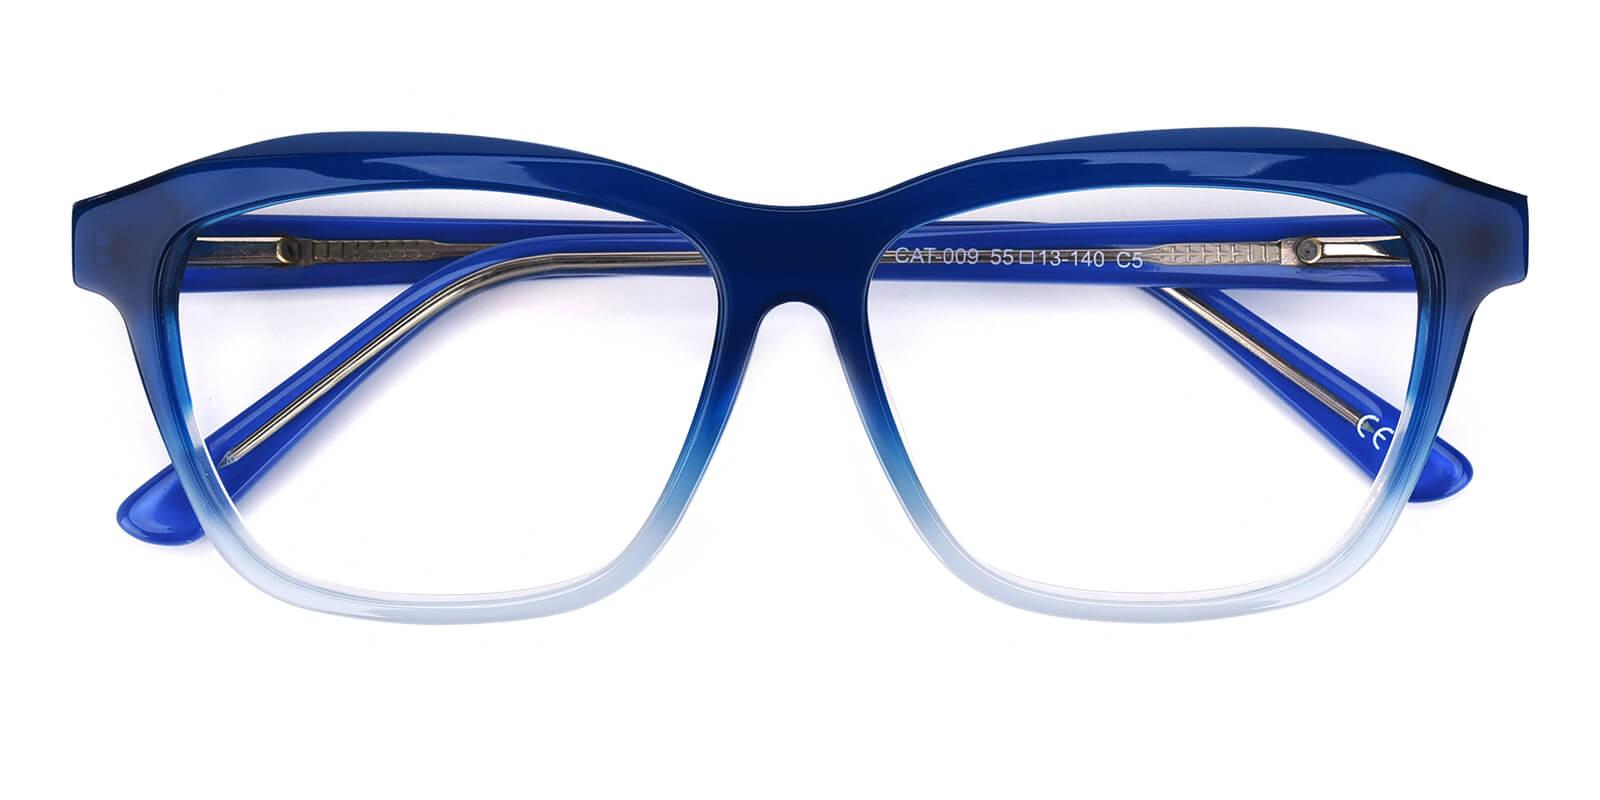 Gate-Blue-Square / Cat-Acetate-Eyeglasses-detail